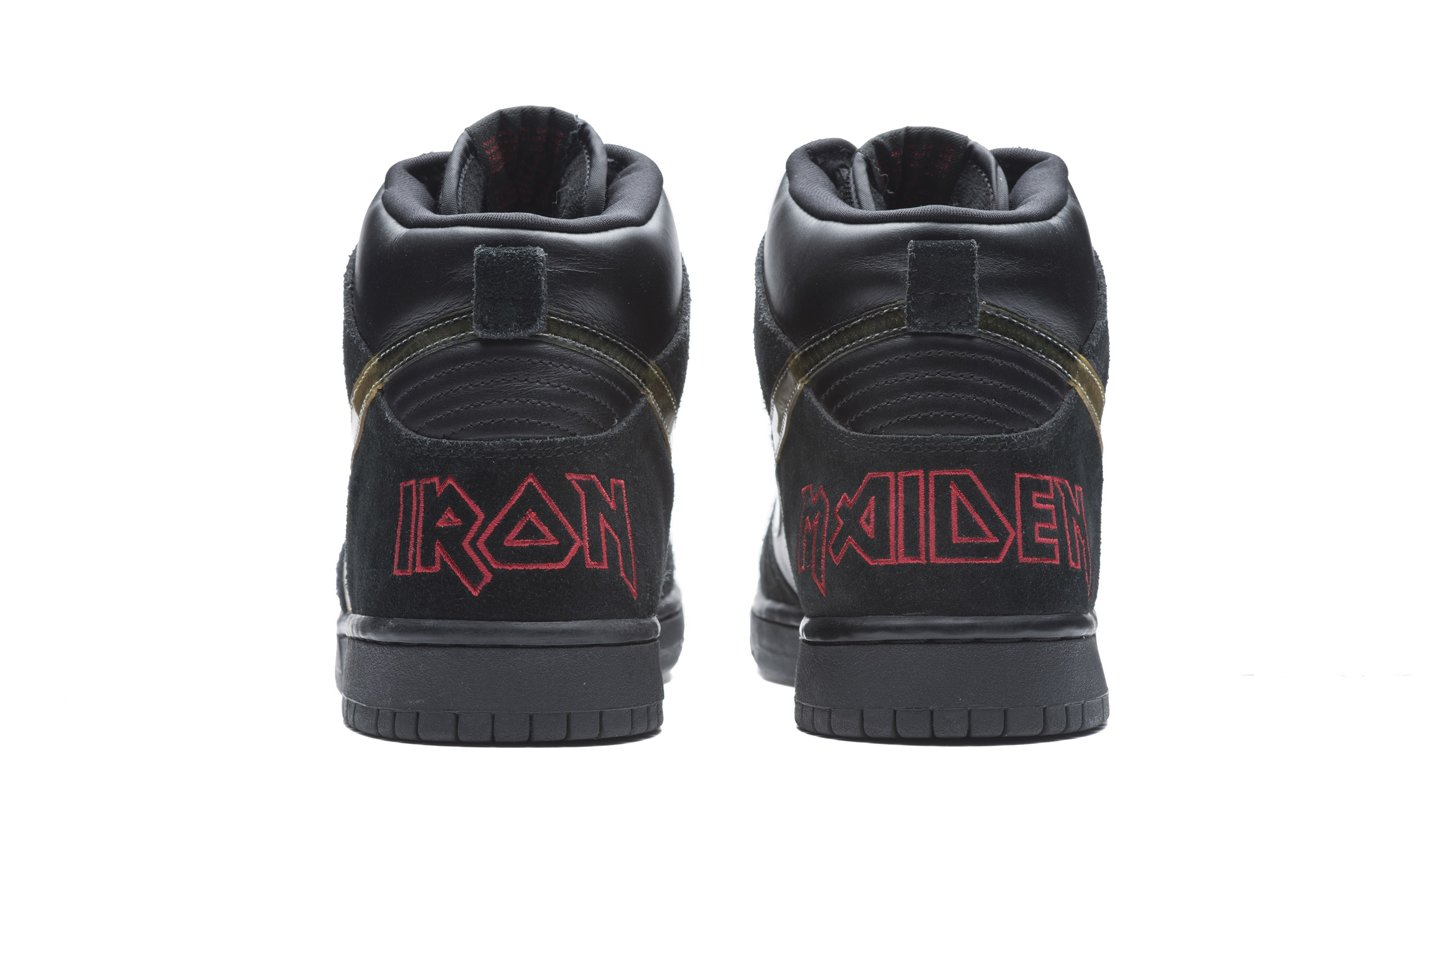 the best attitude 8de25 84750 Iron Maiden - Nike Skateboarding